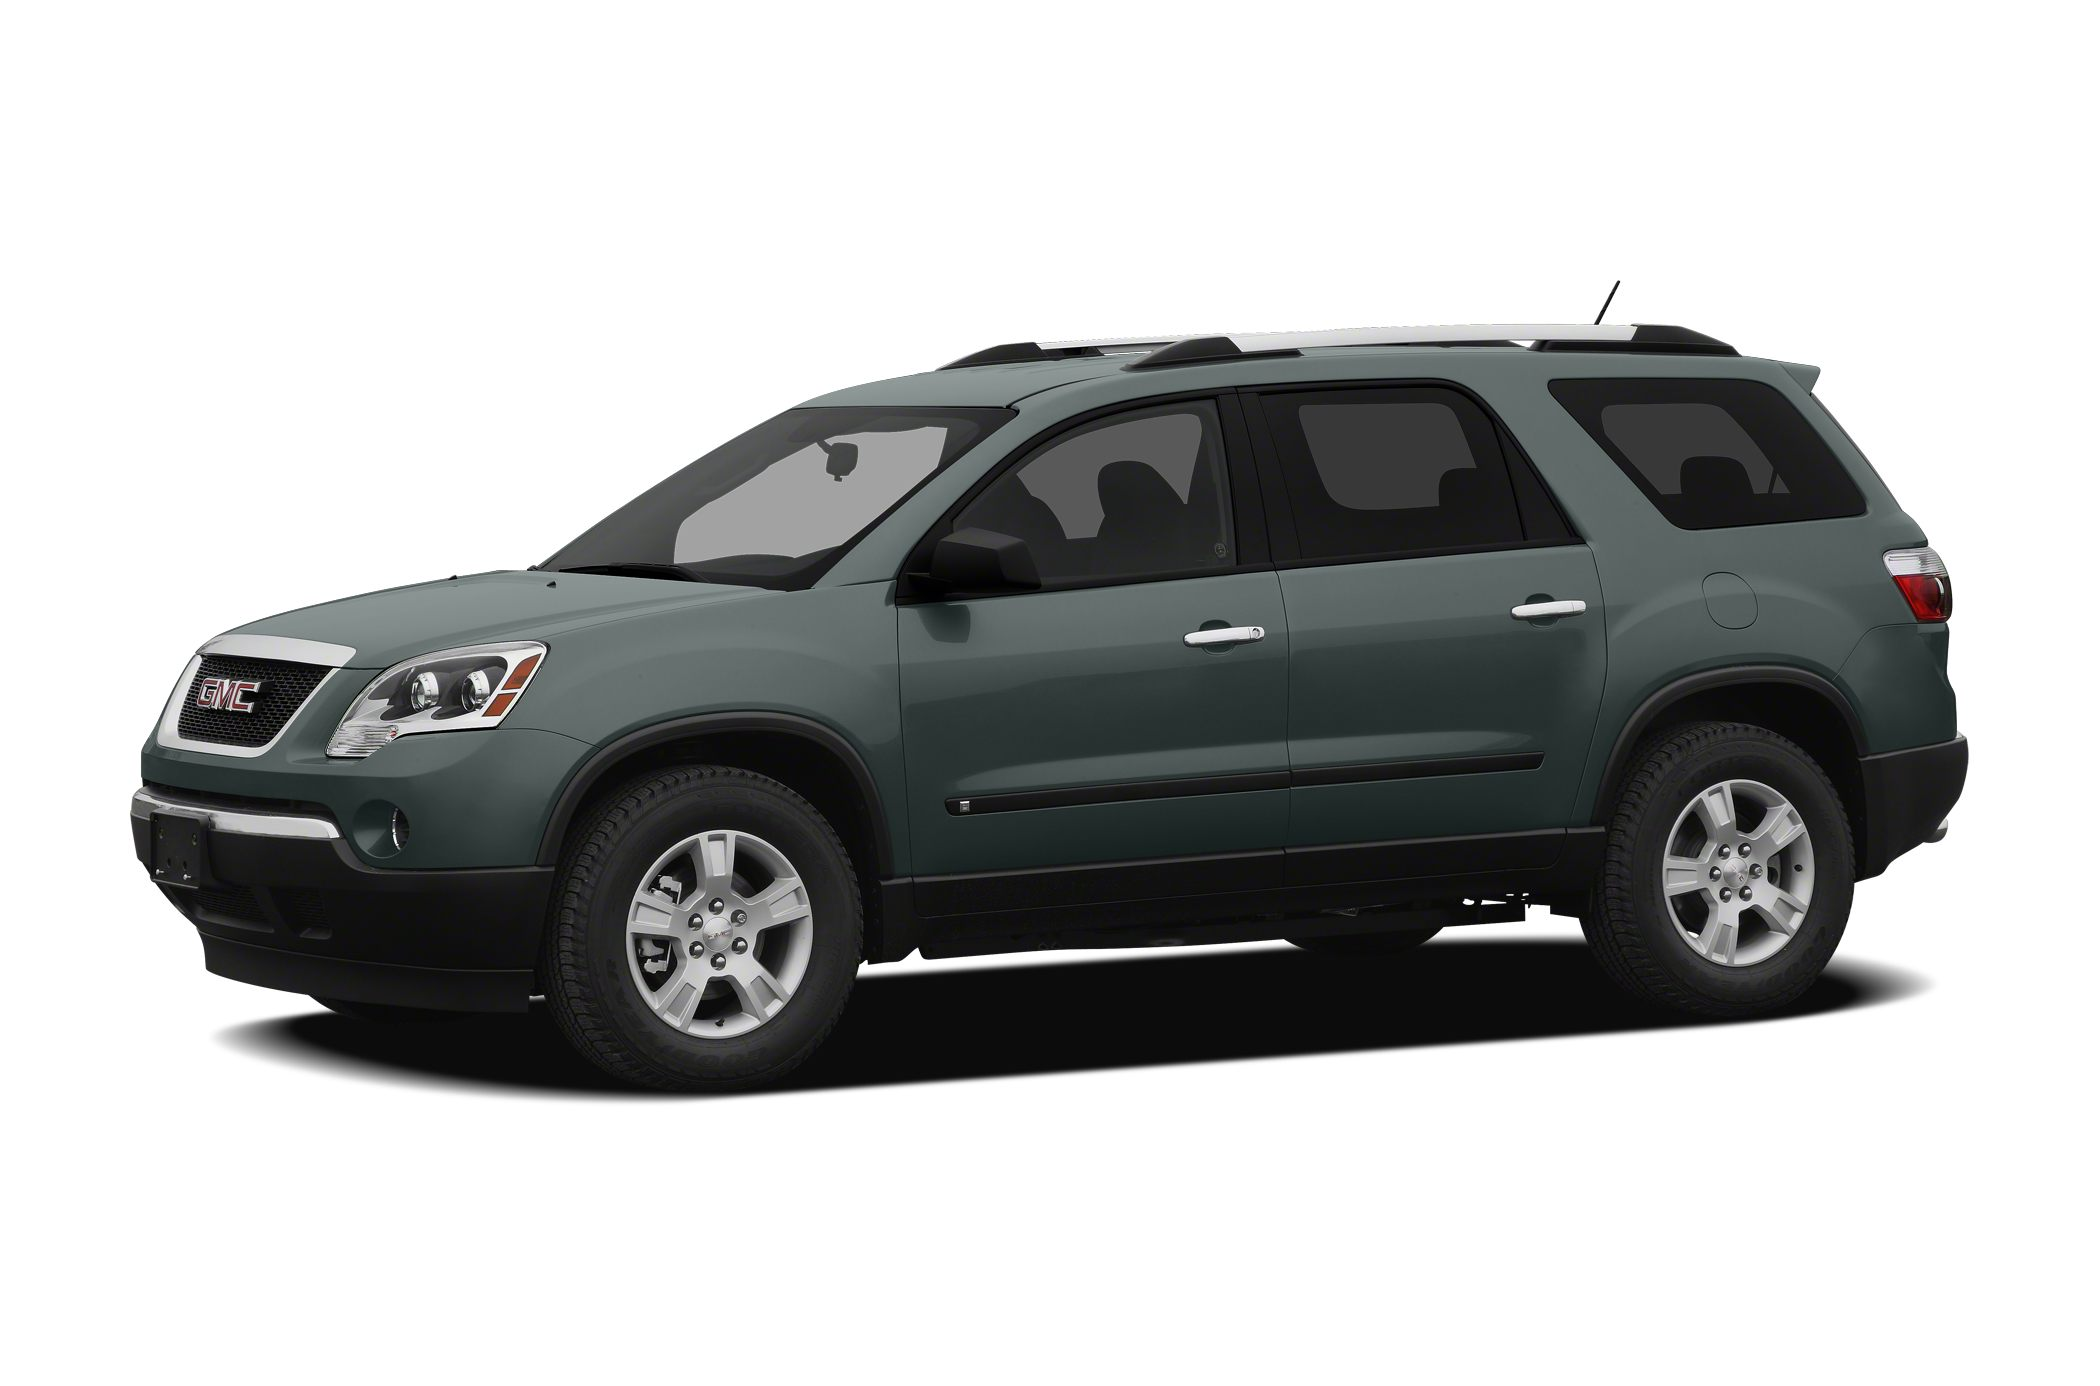 2010 GMC Acadia SLT-1 SUV for sale in Morton for $18,860 with 90,832 miles